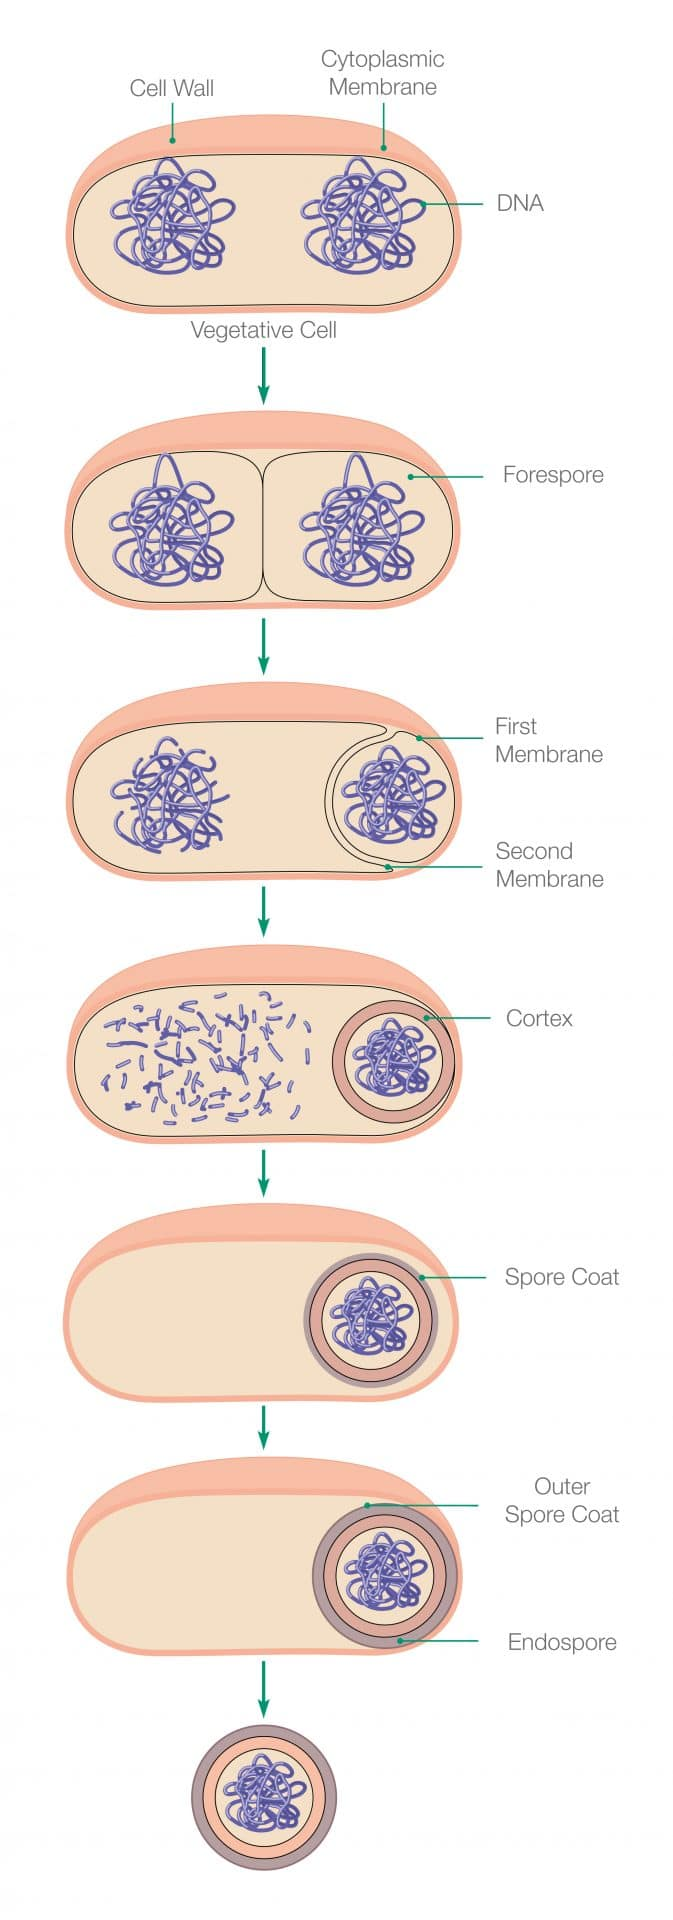 This diagram shows how a bacterial cell can form a disinfection-resistant coating called an endospore